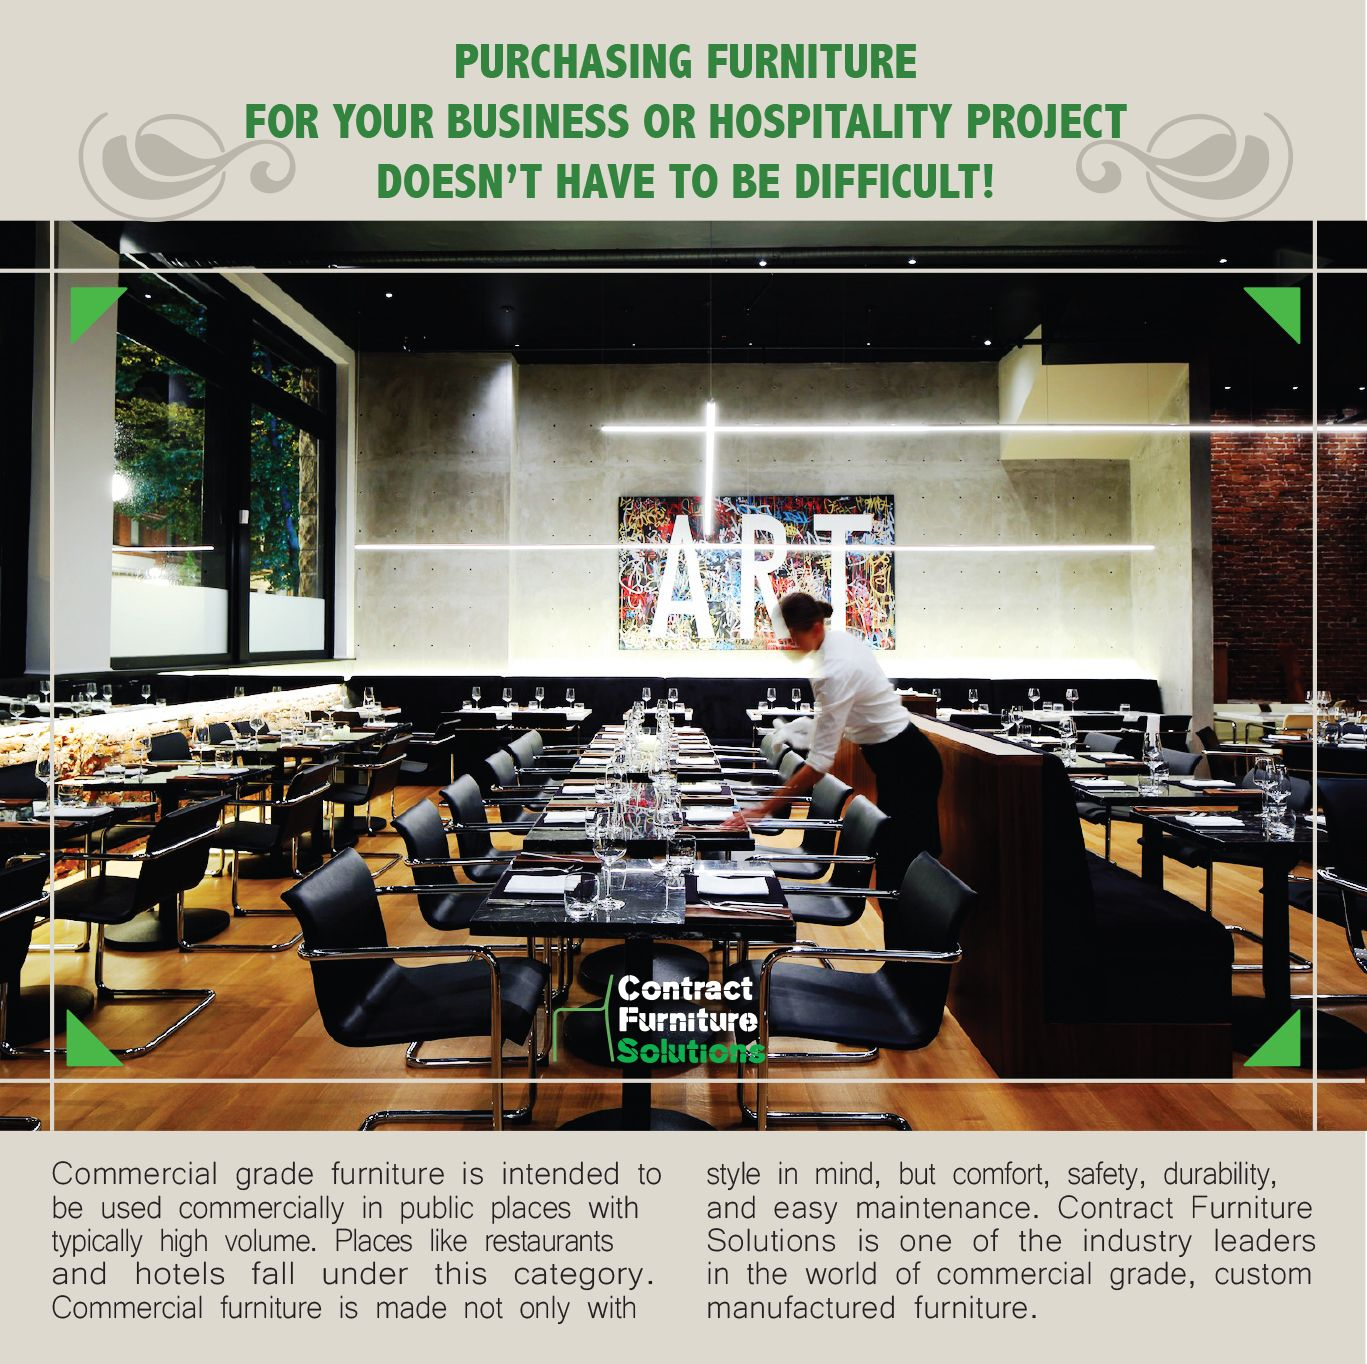 Contract furniture solutions specializes in the supply of custom furniture for hospitality projects beyond the wide range of standard designer pieces